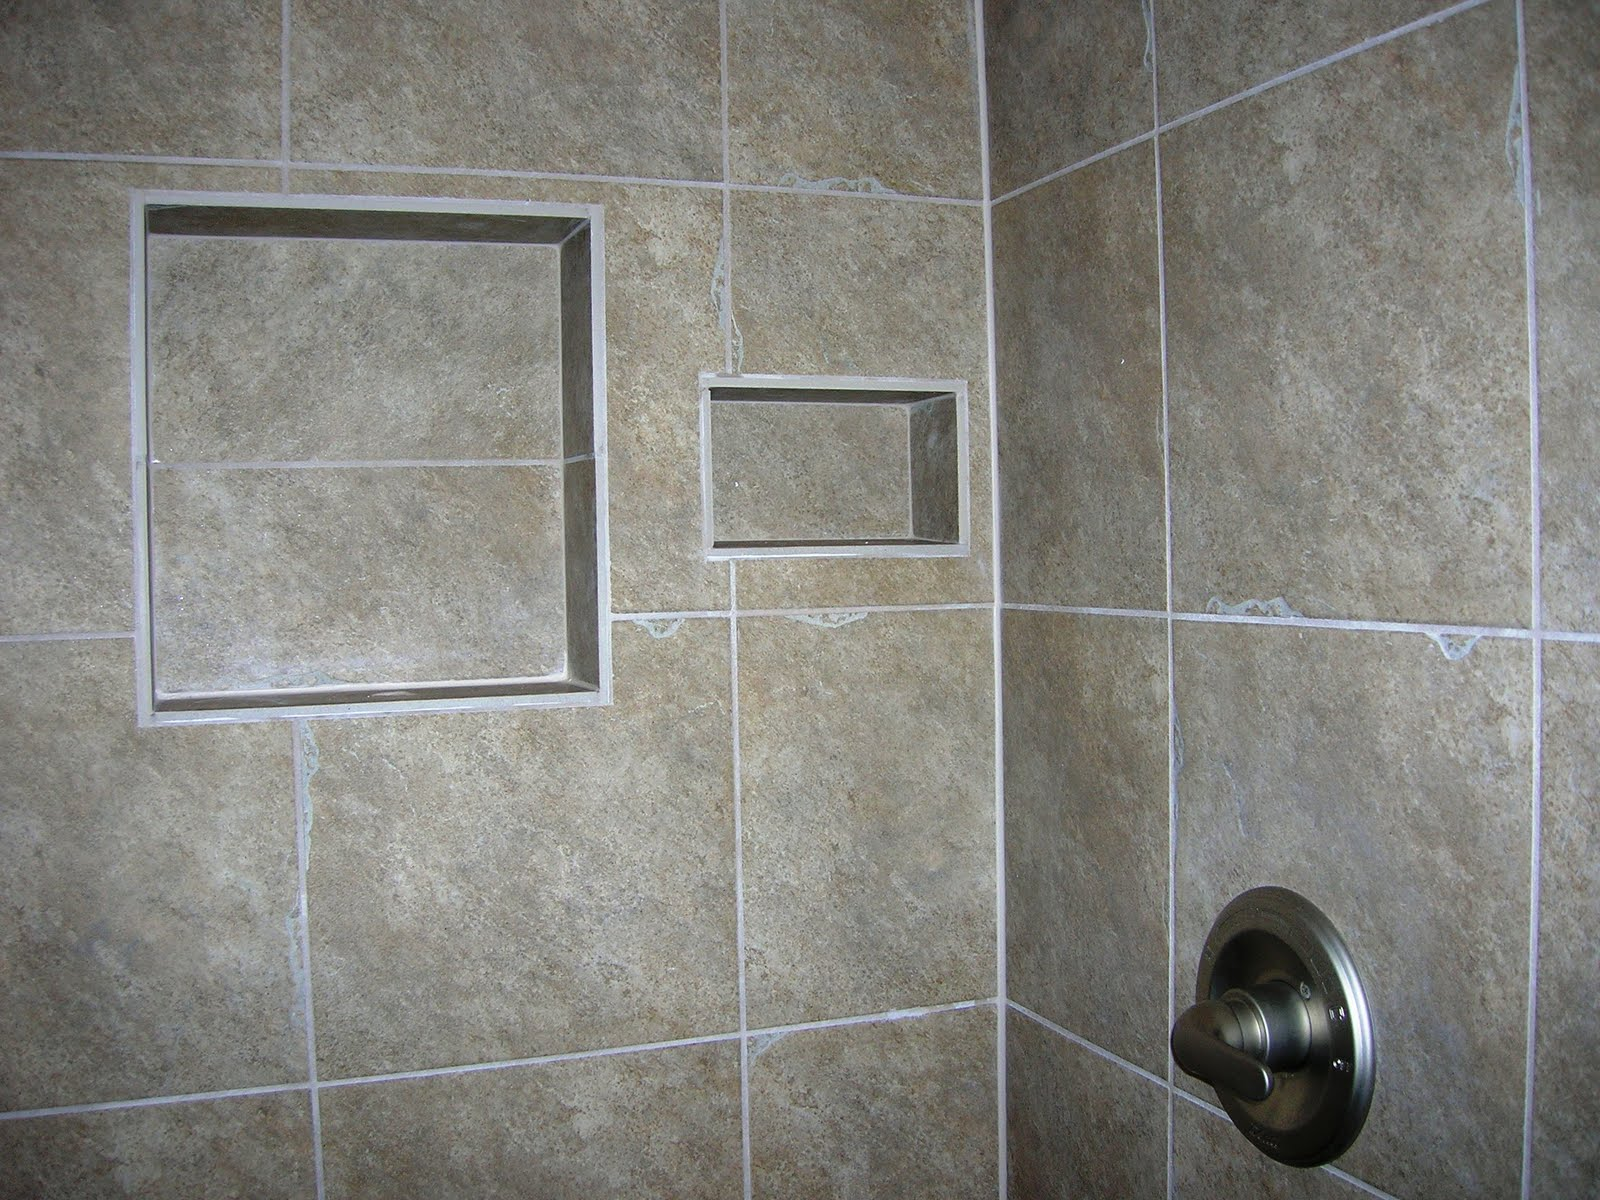 30 nice pictures and ideas of modern bathroom wall tile design pictures - Bathroom tile designs gallery ...